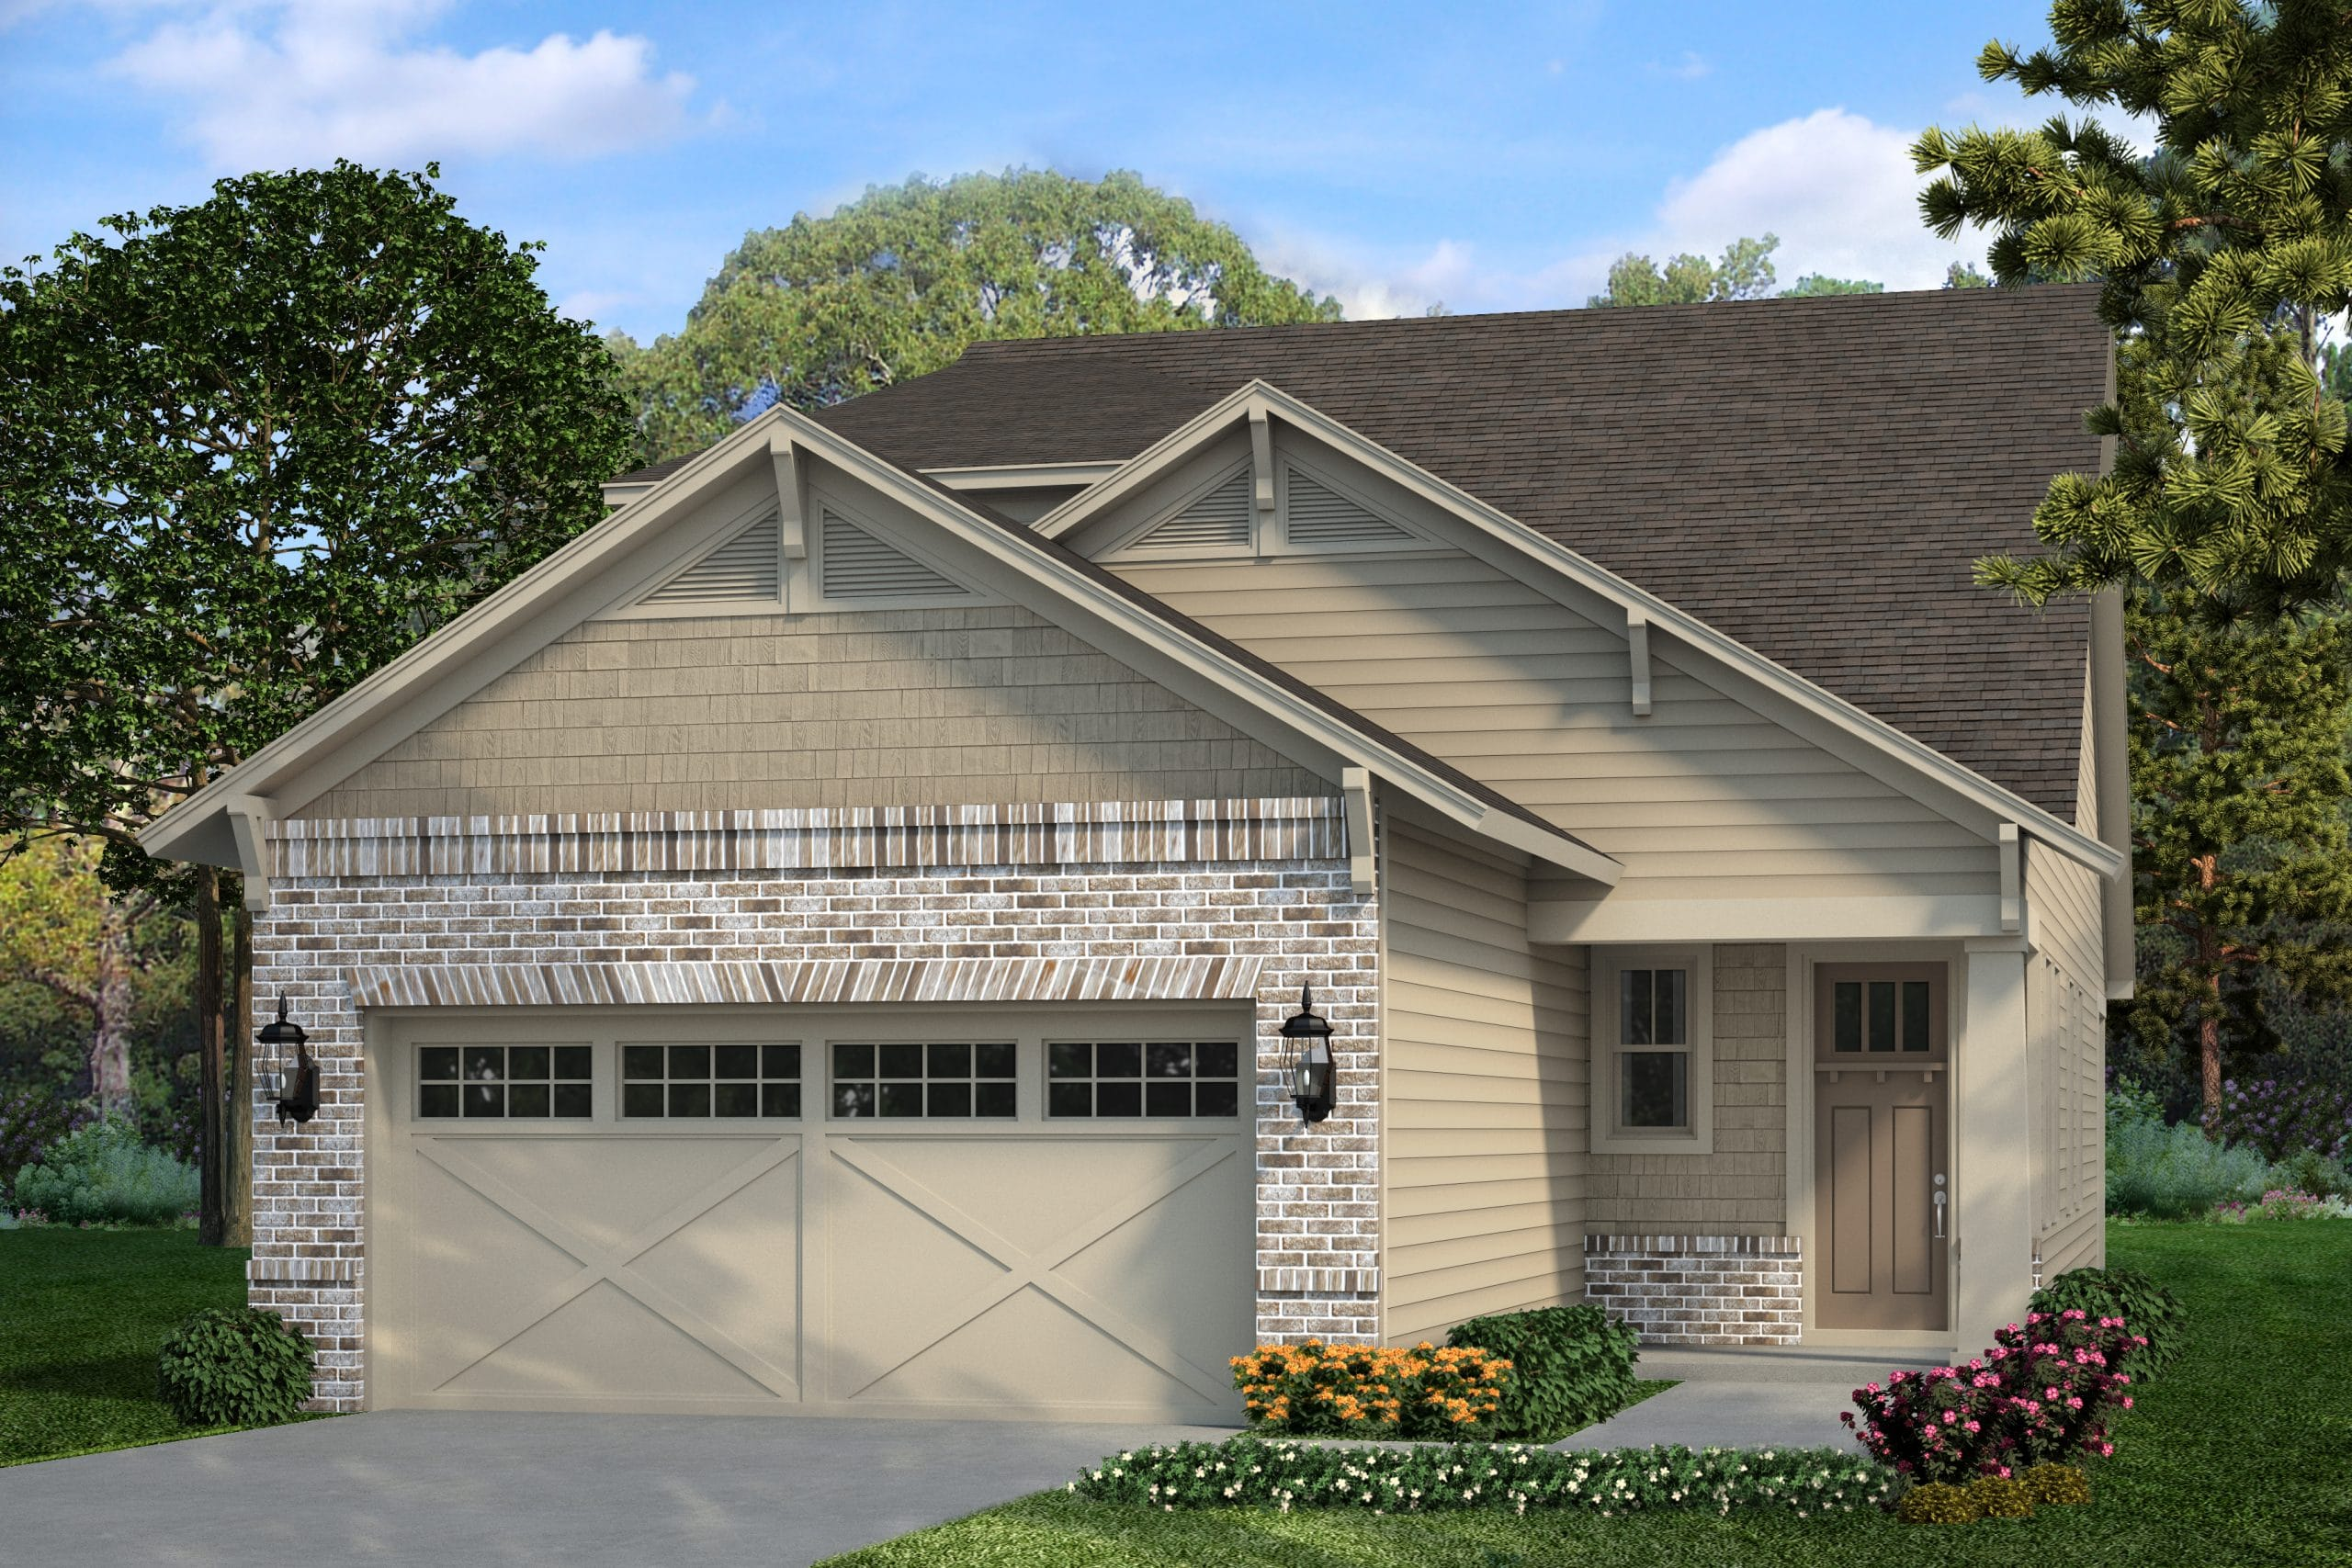 Kolter to Debut New Designs at New Active Adult Hoschton Community